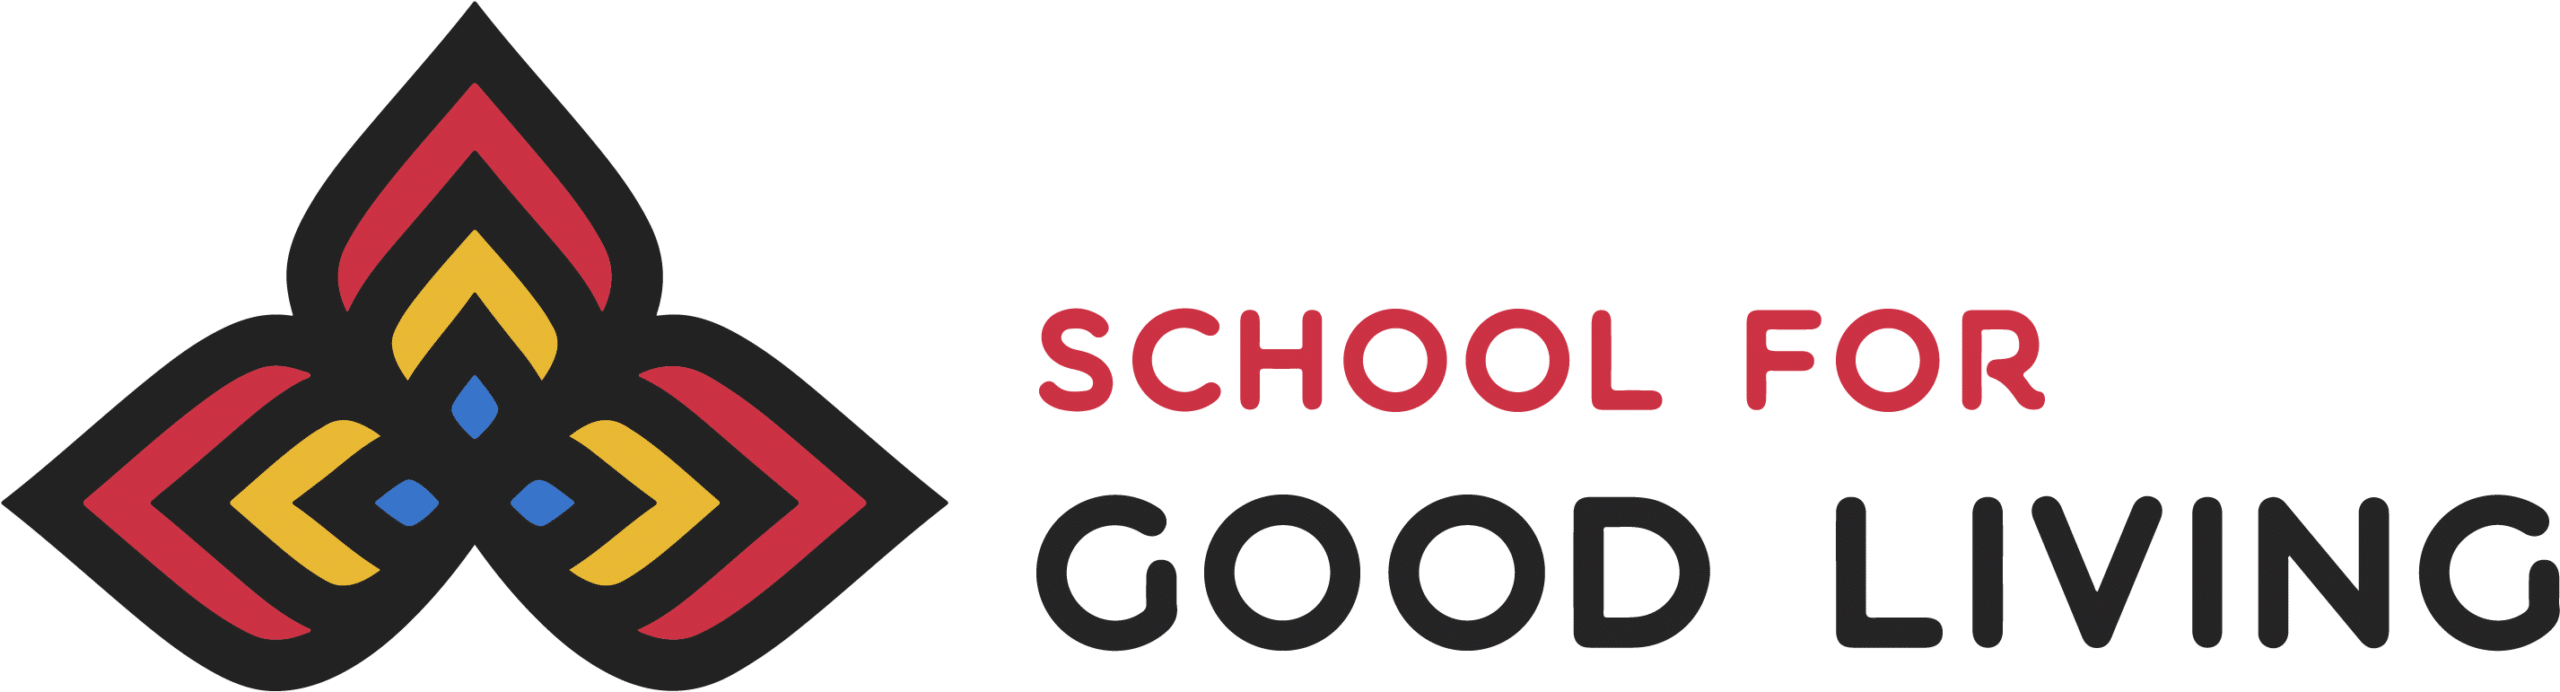 School for Good Living